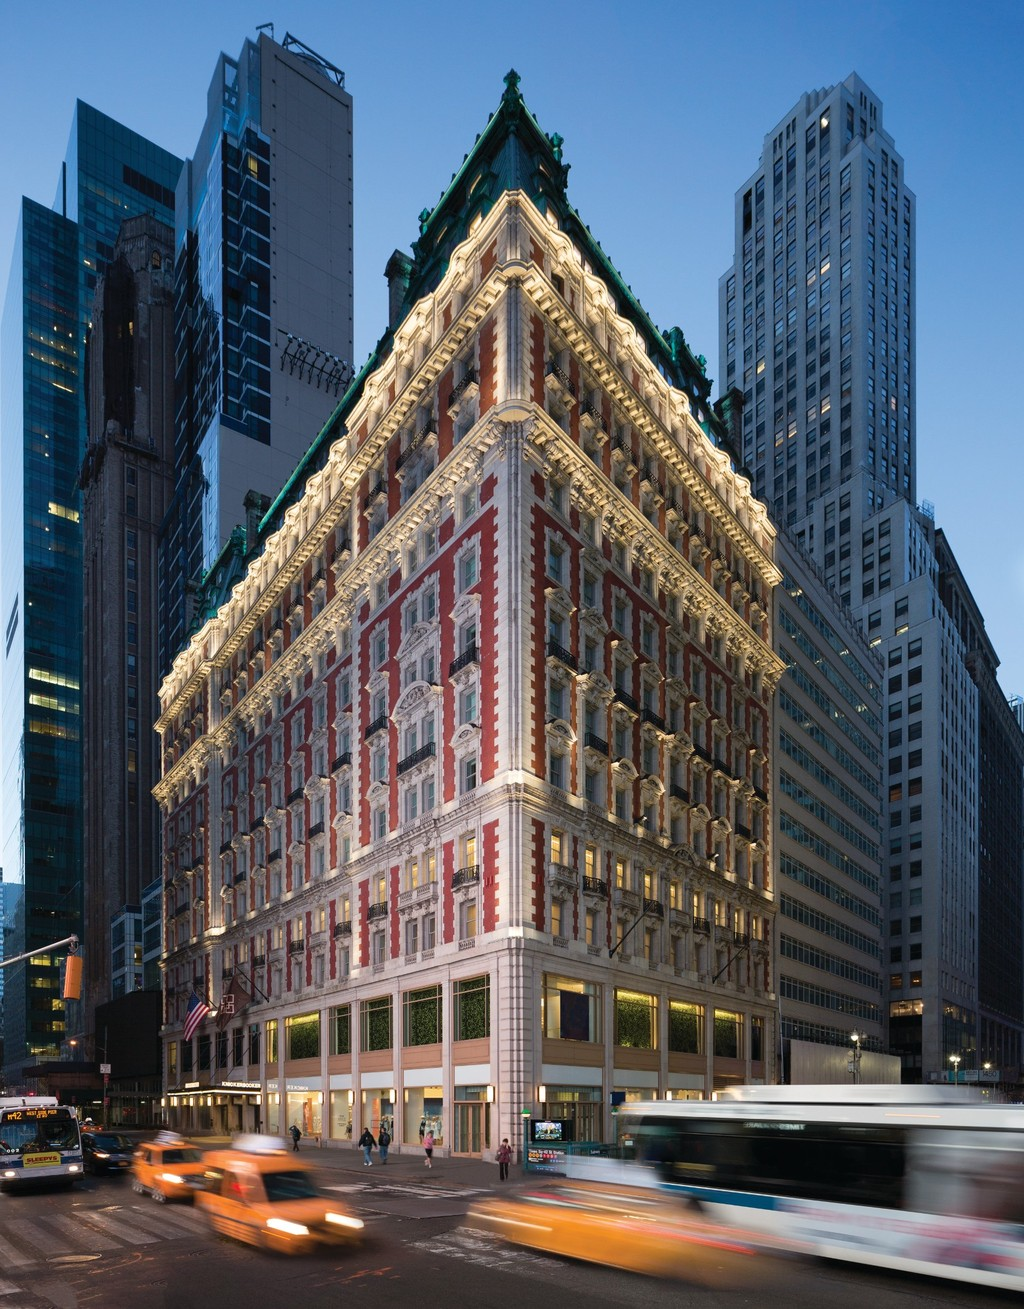 The Knickerbocker Hotel